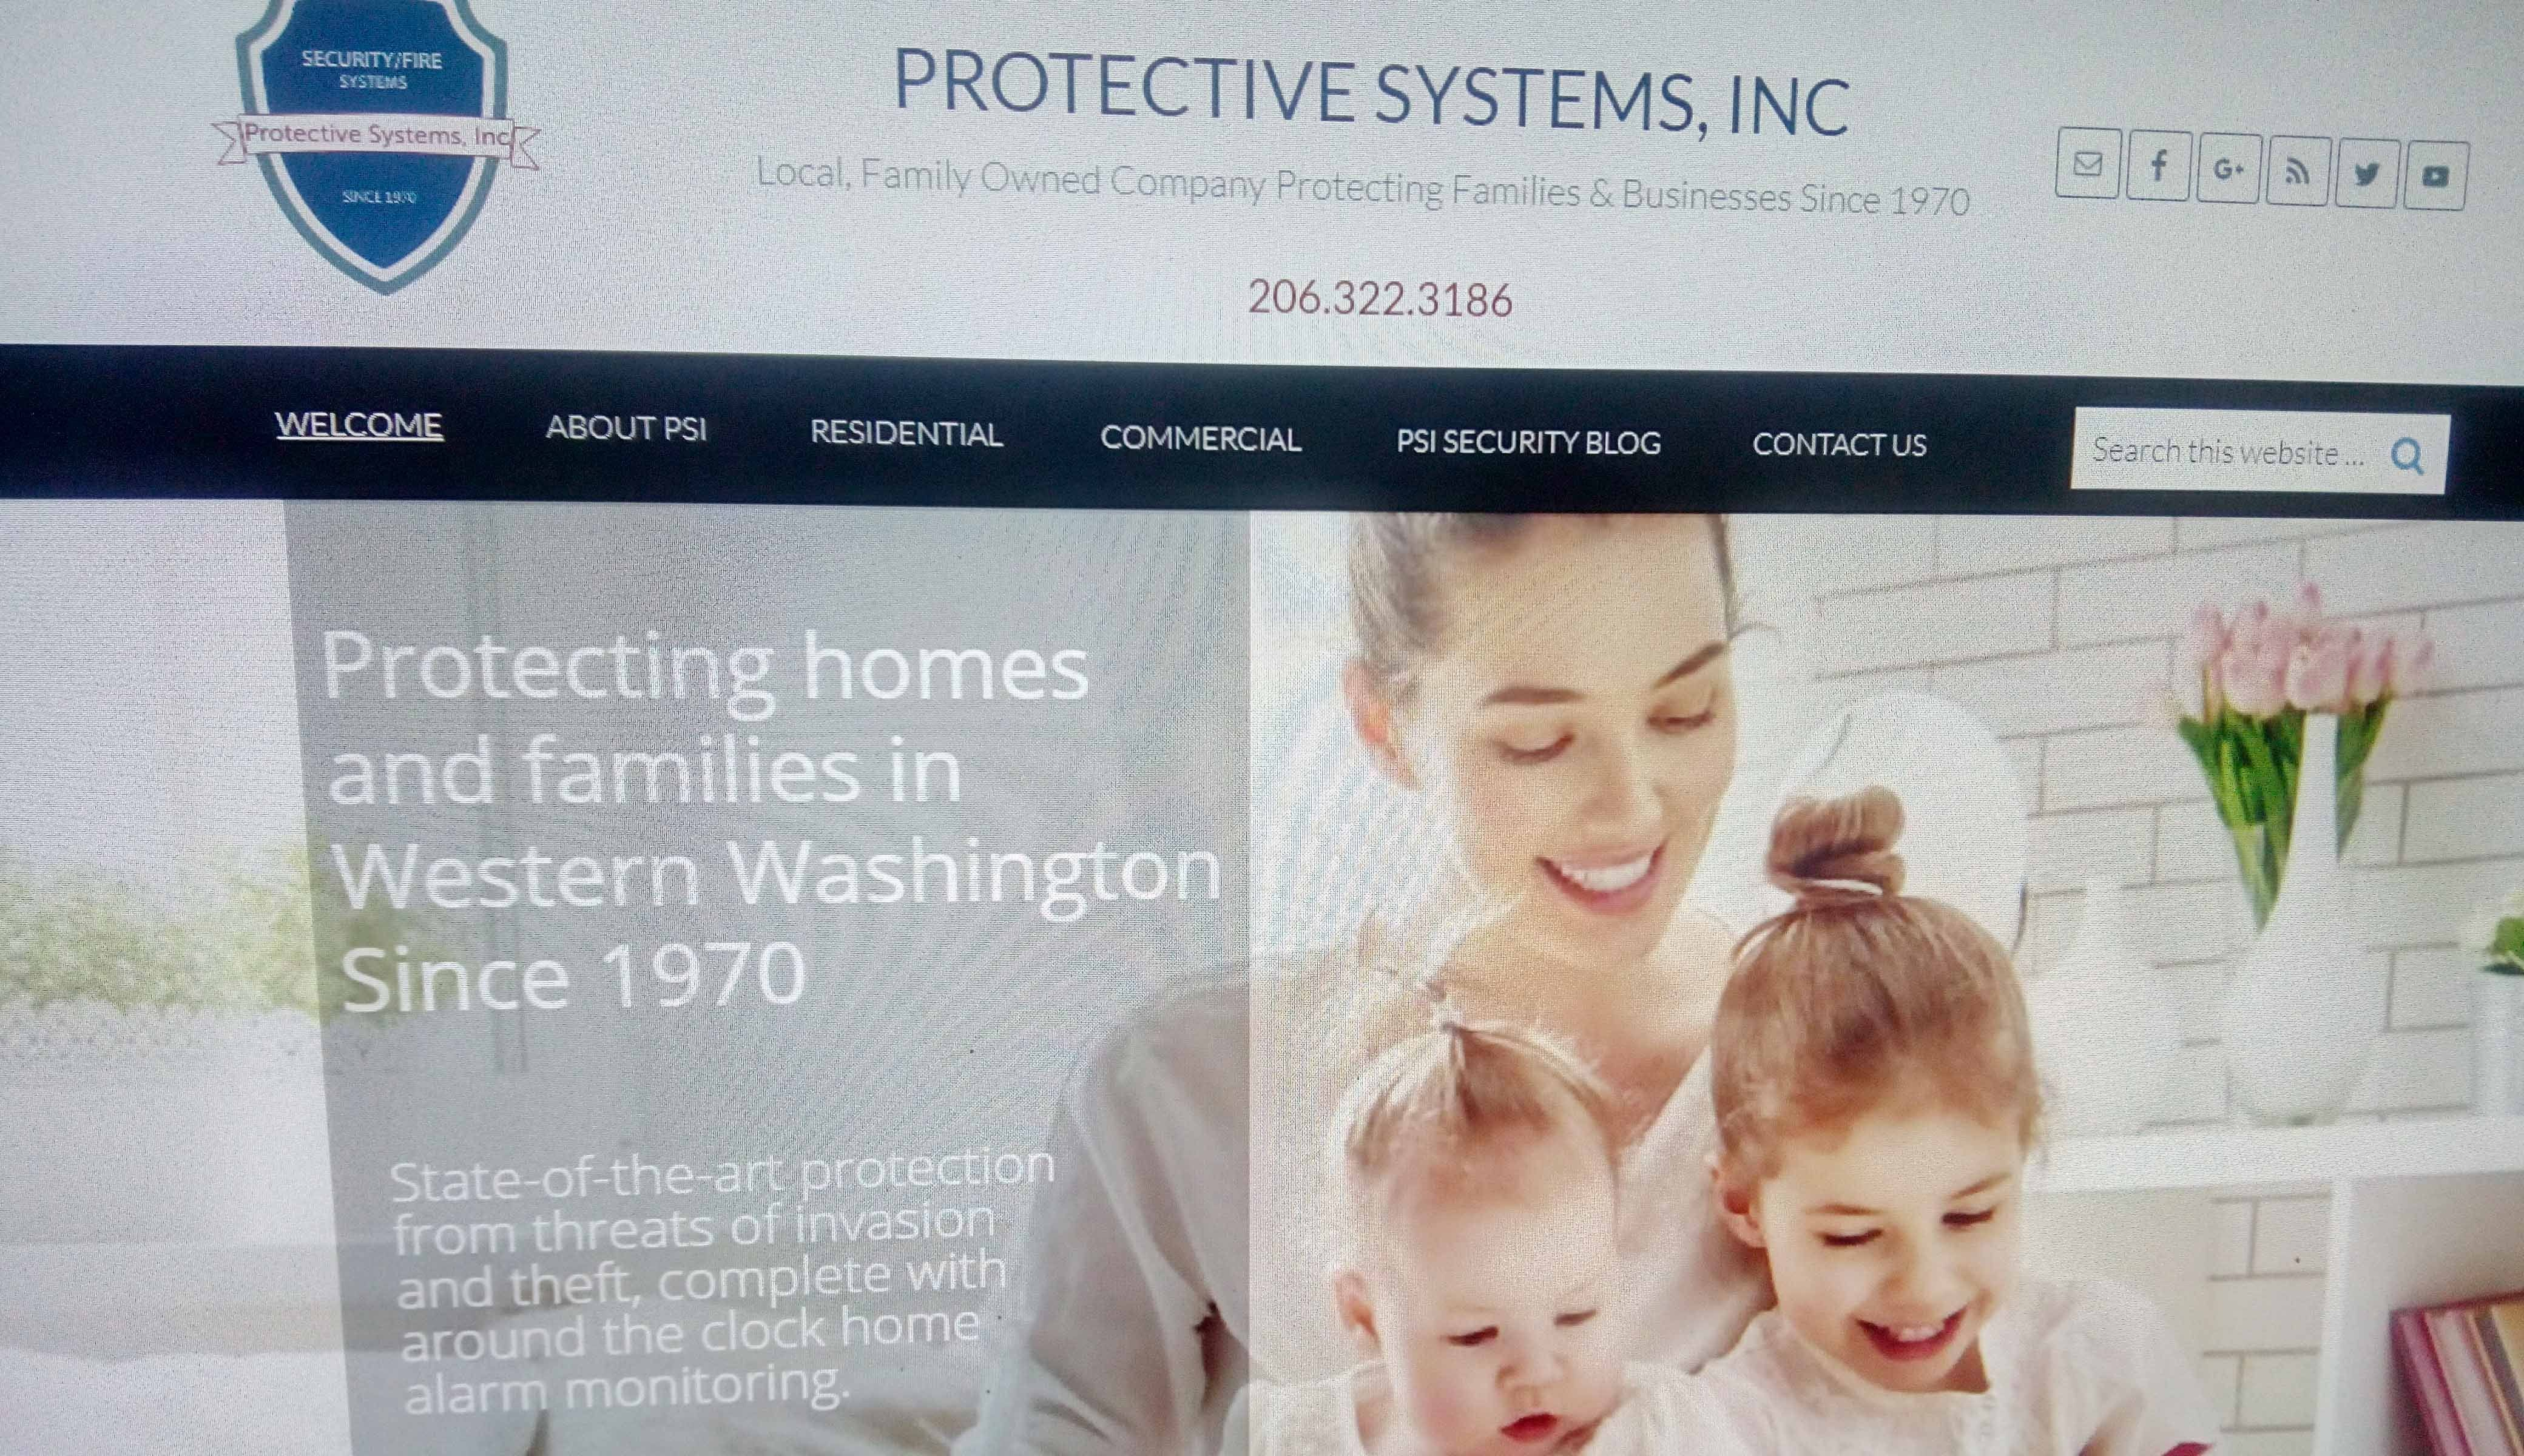 Protective Systems Inc Case Study